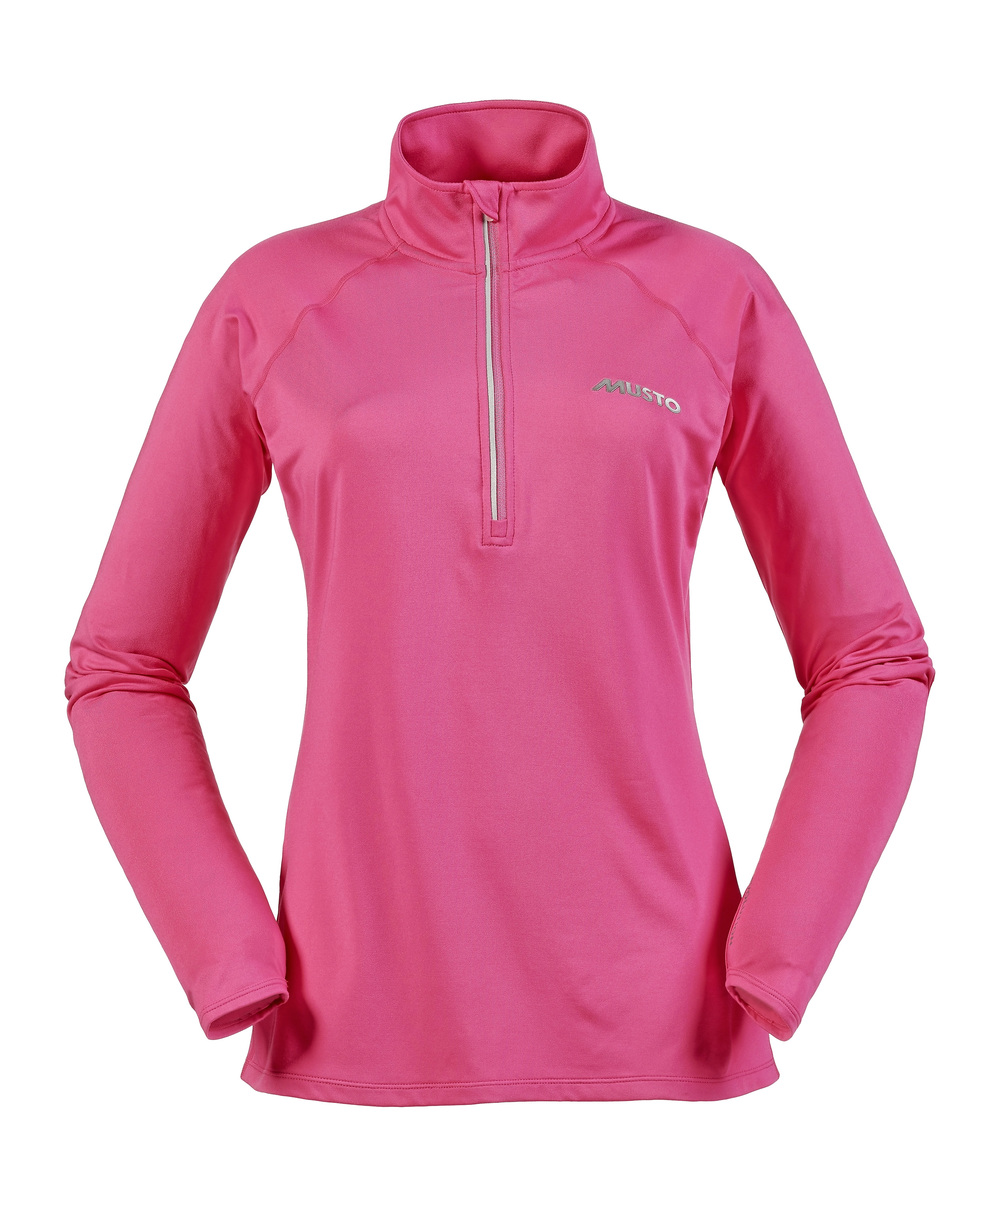 Musto Light Warm Up Top